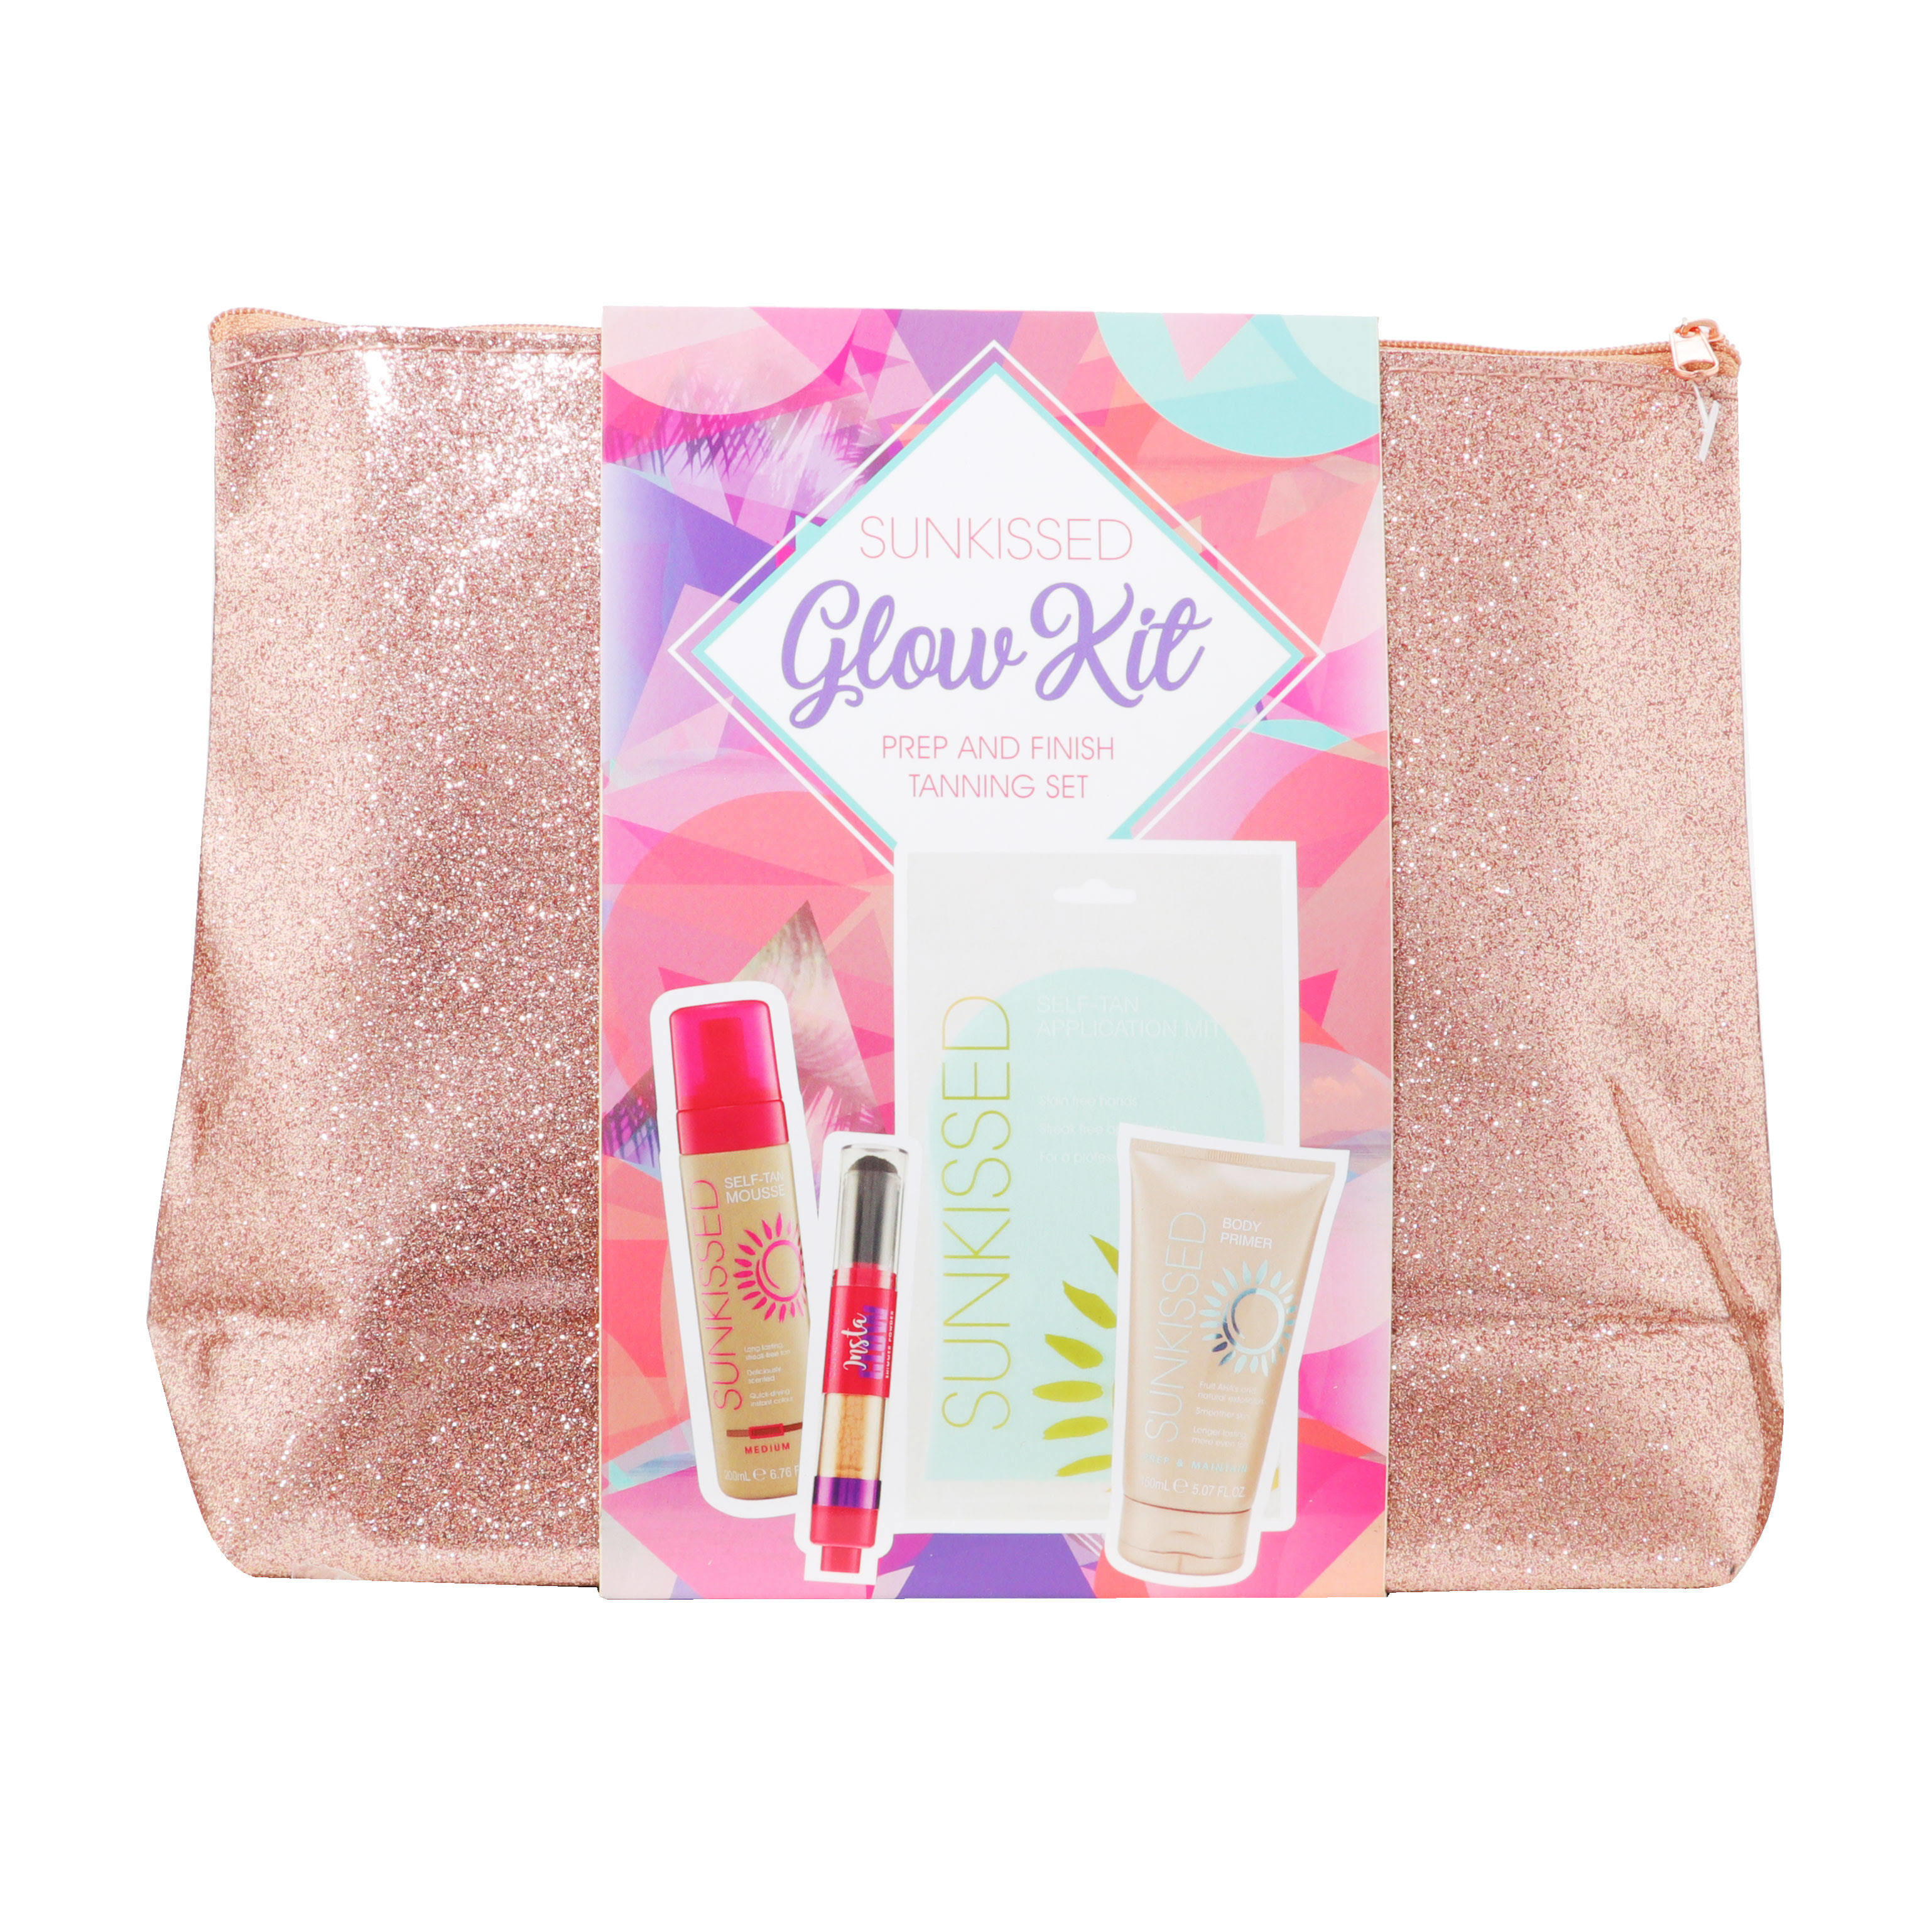 Sunkissed Glow Gift Set. 00067